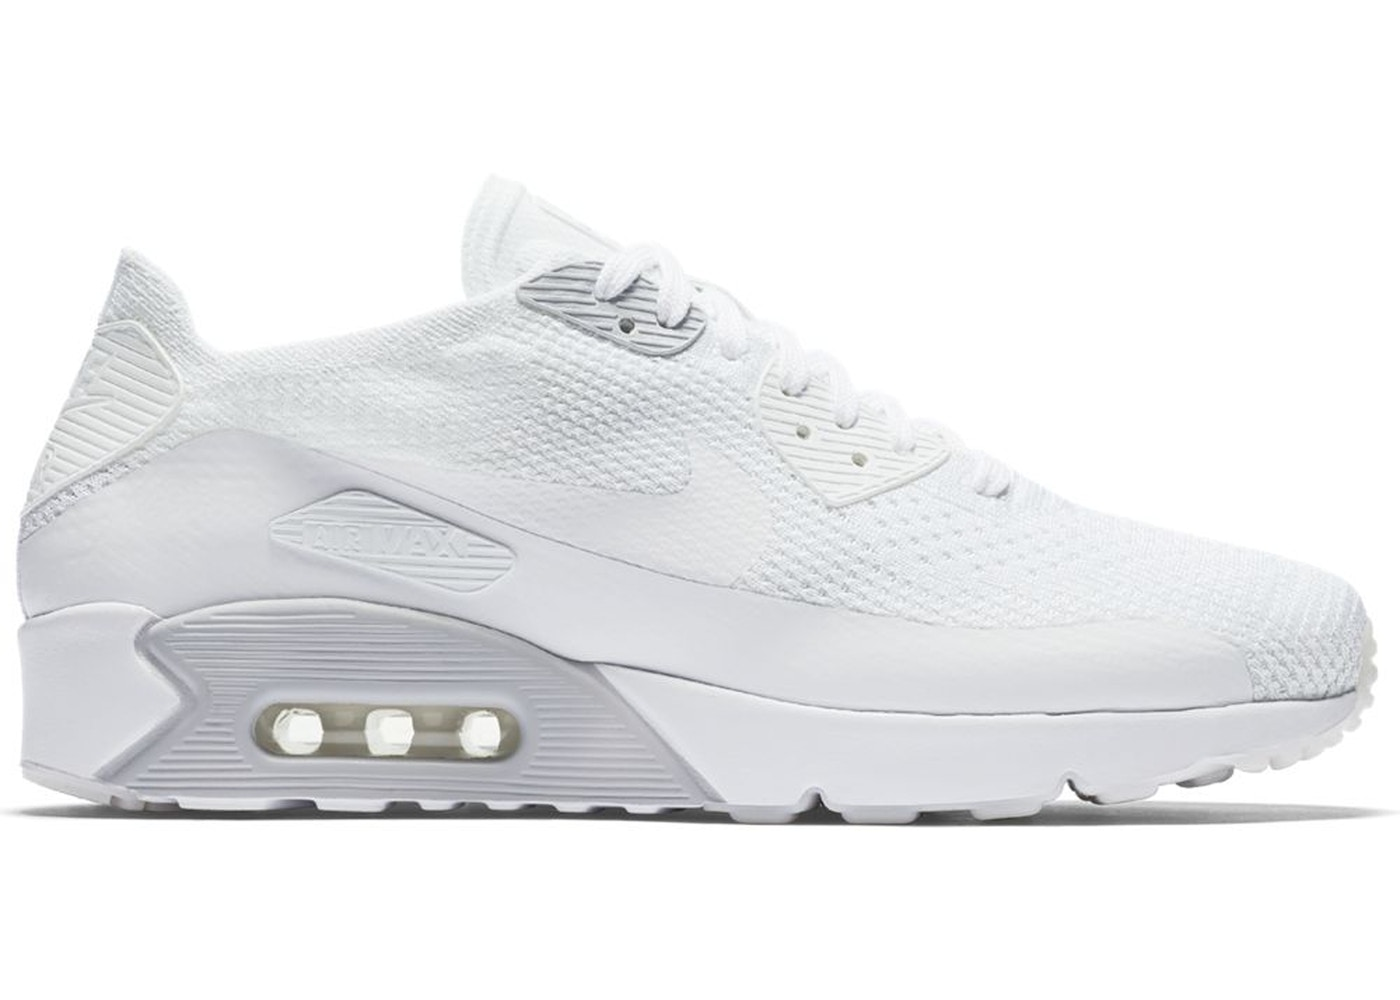 cheap for discount 29d0a 7995e Air Max 90 Ultra 2.0 Flyknit White - 875943-101